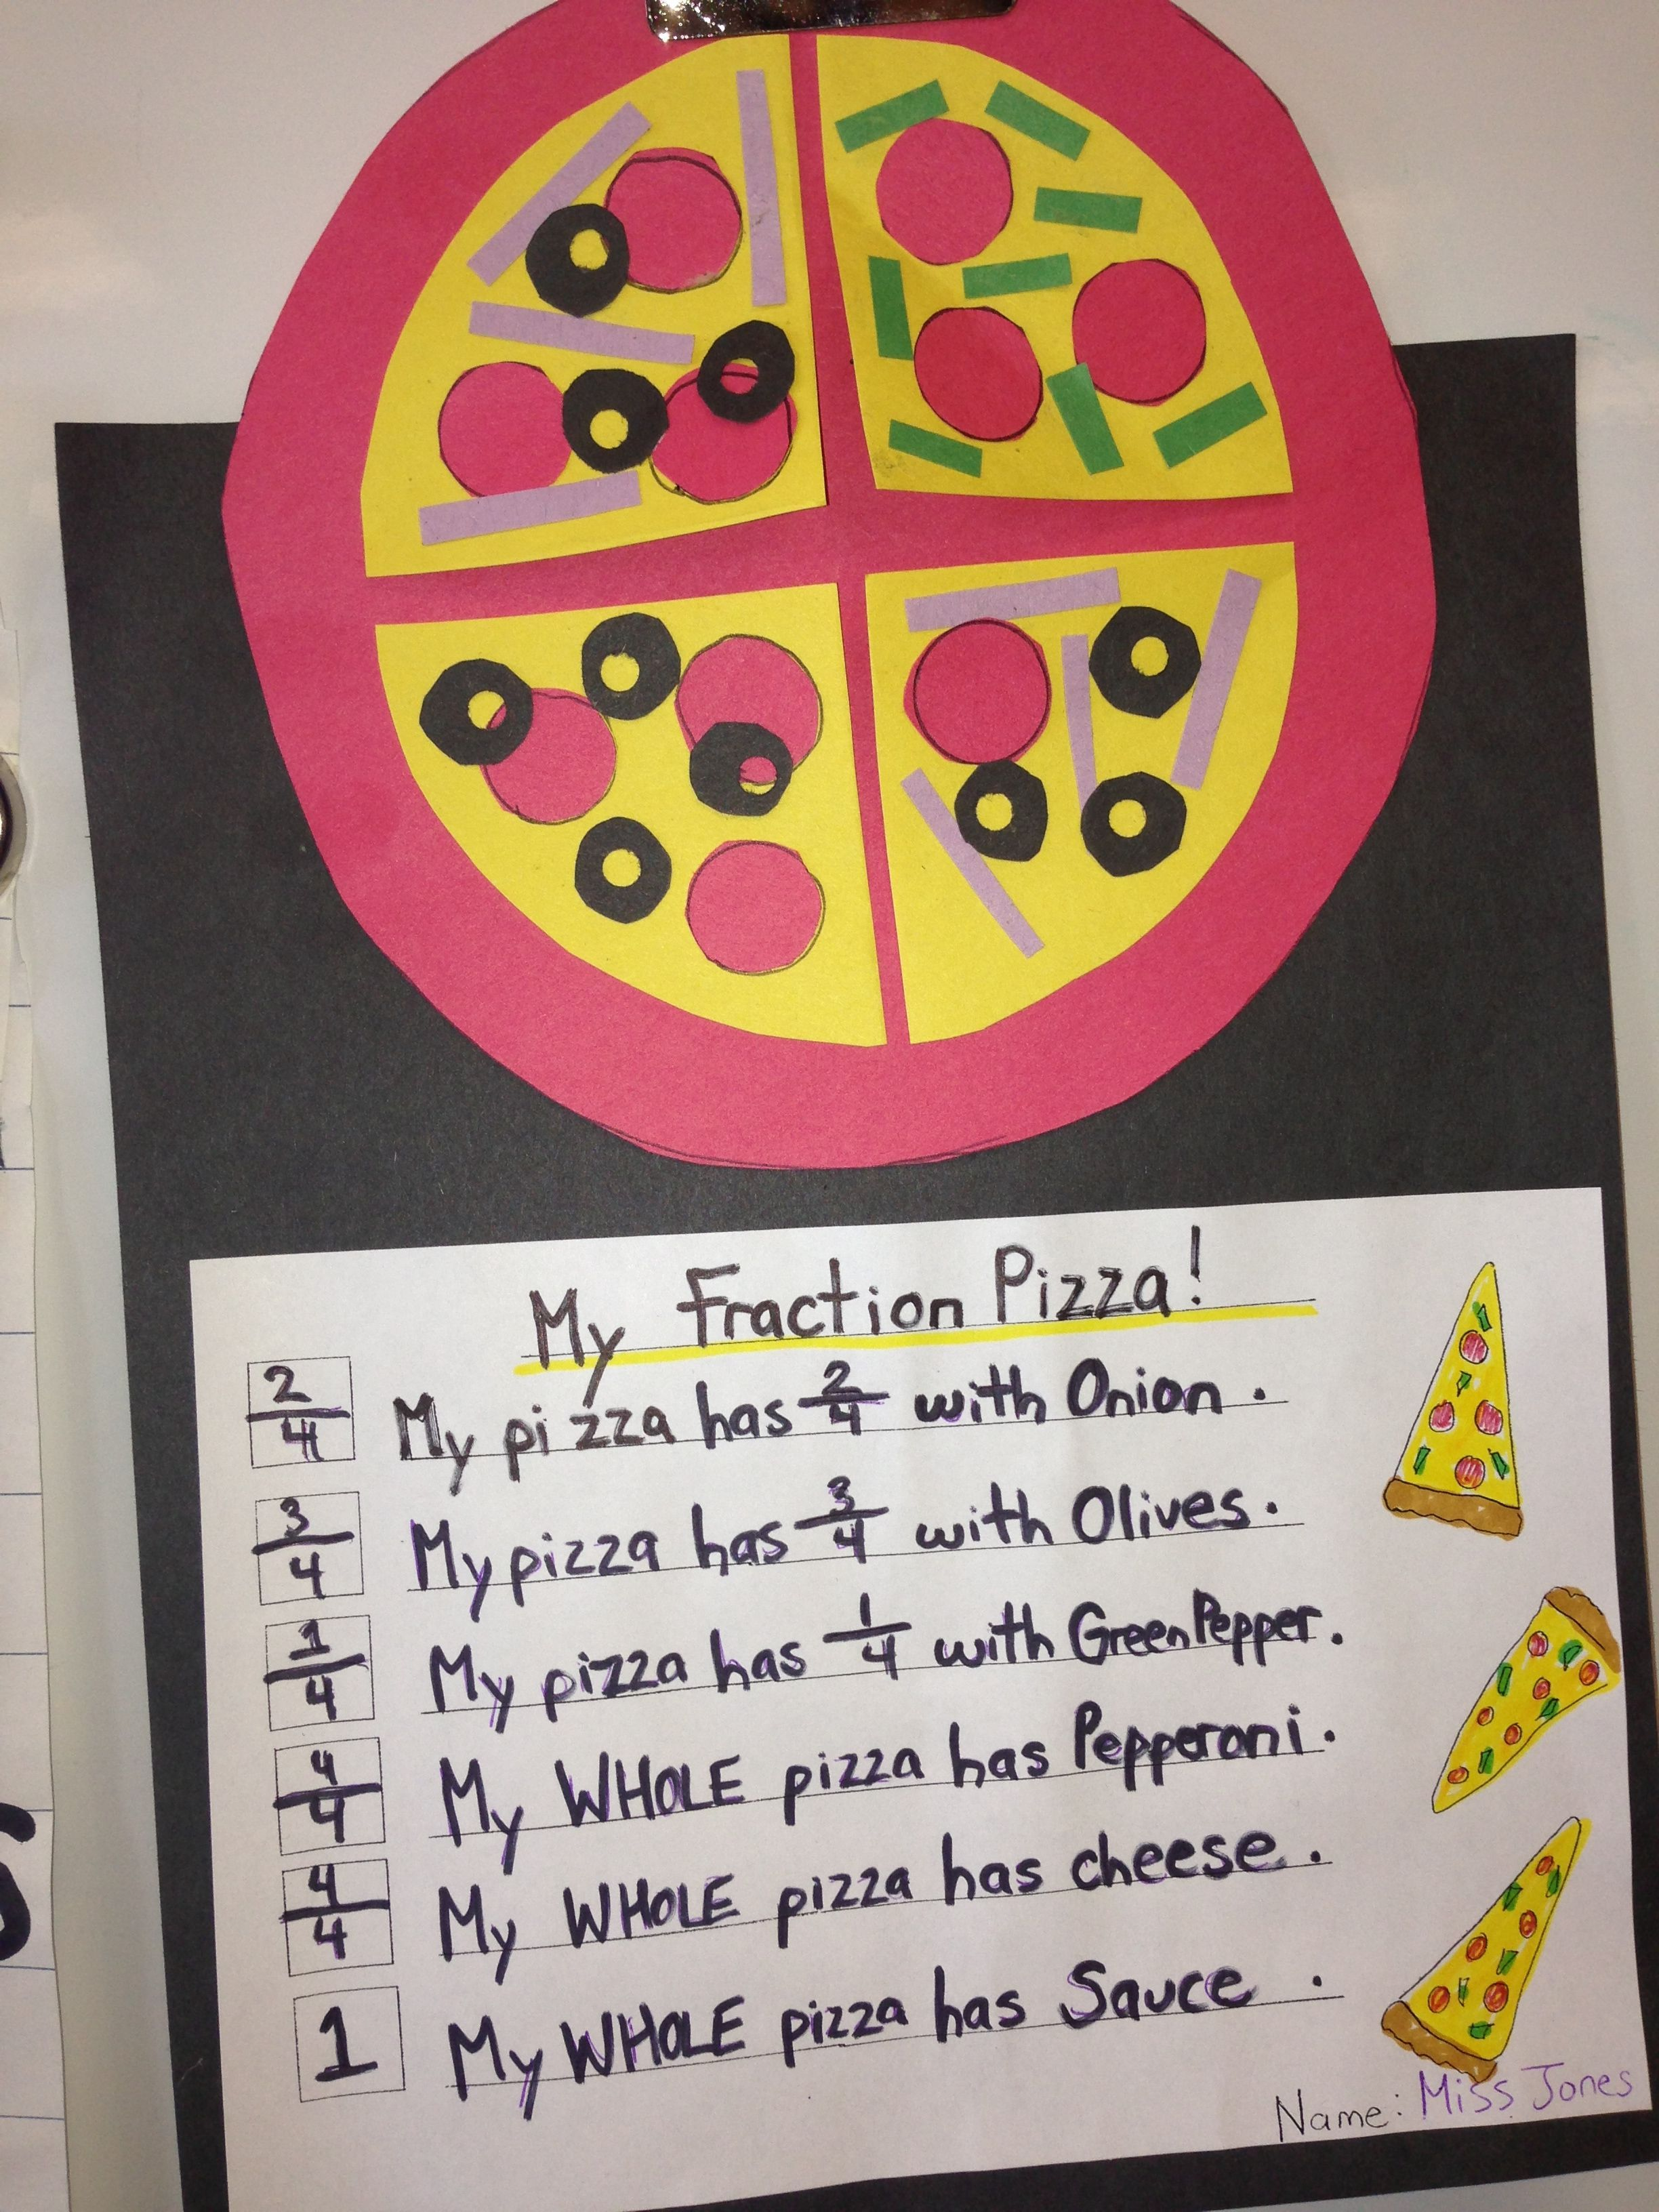 Fraction Pizza Activity Hello Precious Visitor Looking For New Choices Is Among The Most Fun Actions But It C Math Fractions Second Grade Math Math Projects [ 3264 x 2448 Pixel ]